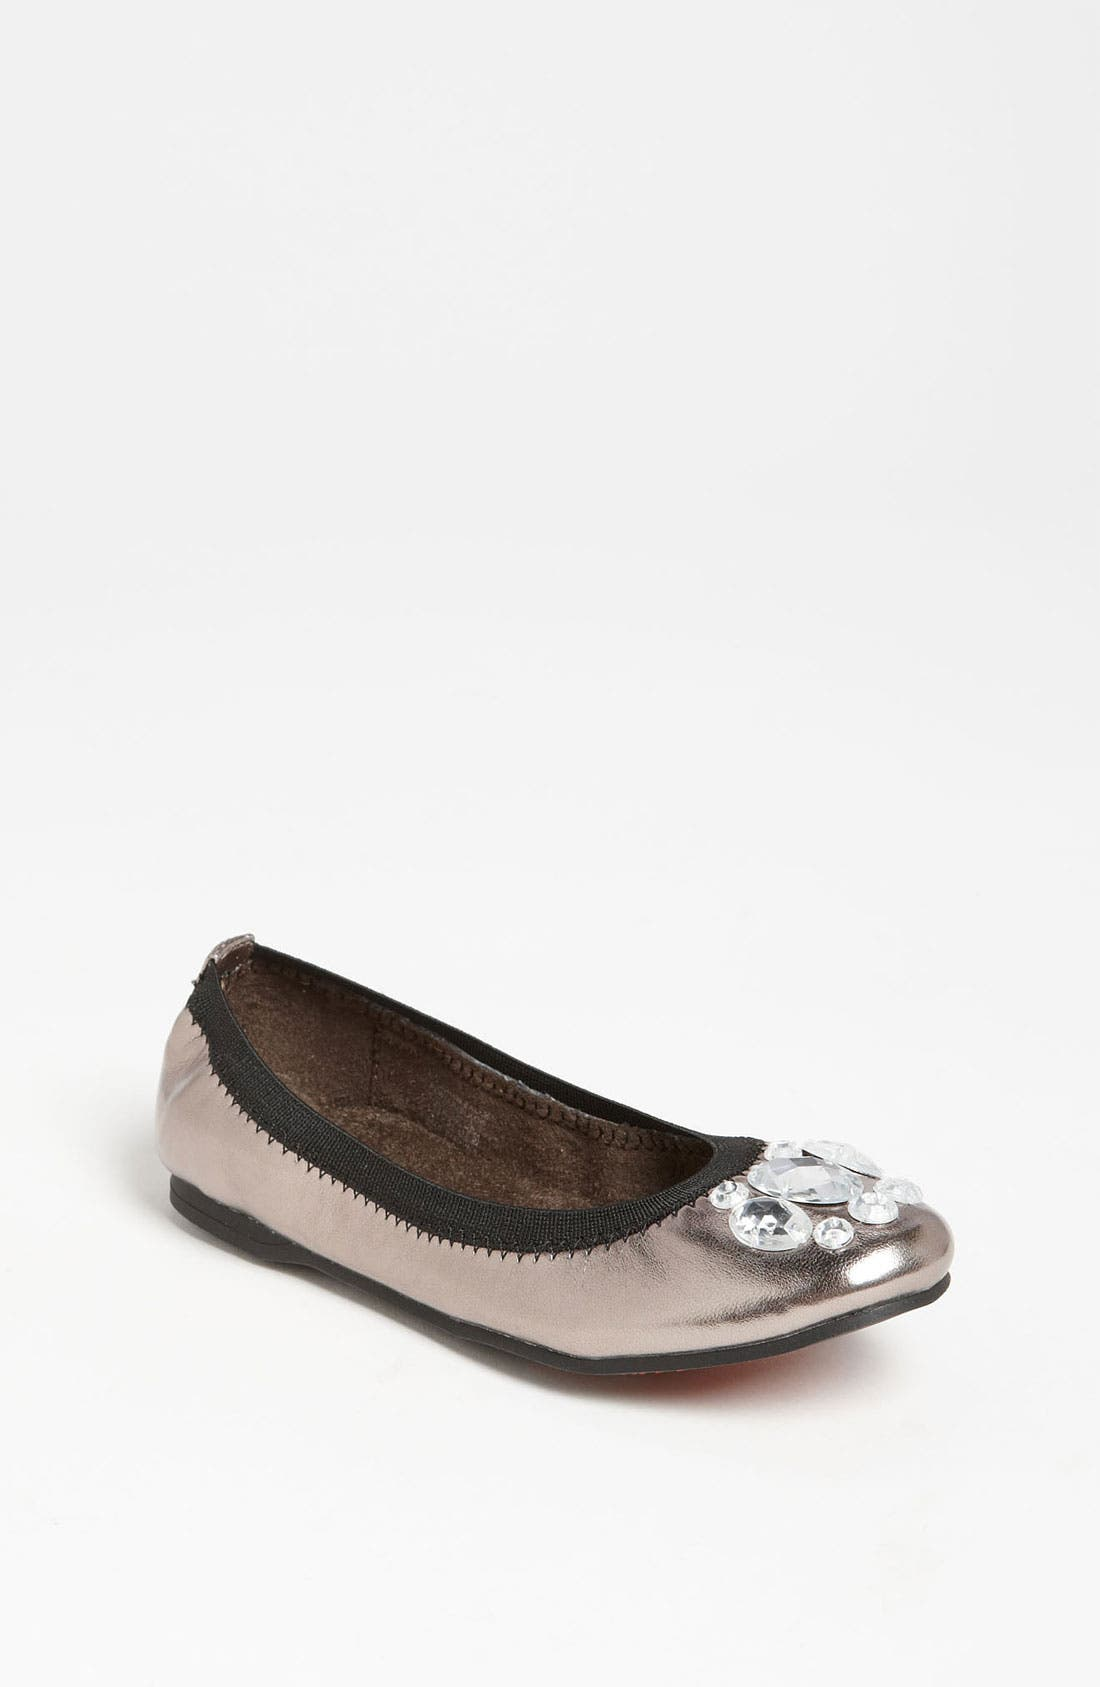 Alternate Image 1 Selected - KORS Michael Kors 'Bradshaw' Flat (Little Kid & Big Kid)